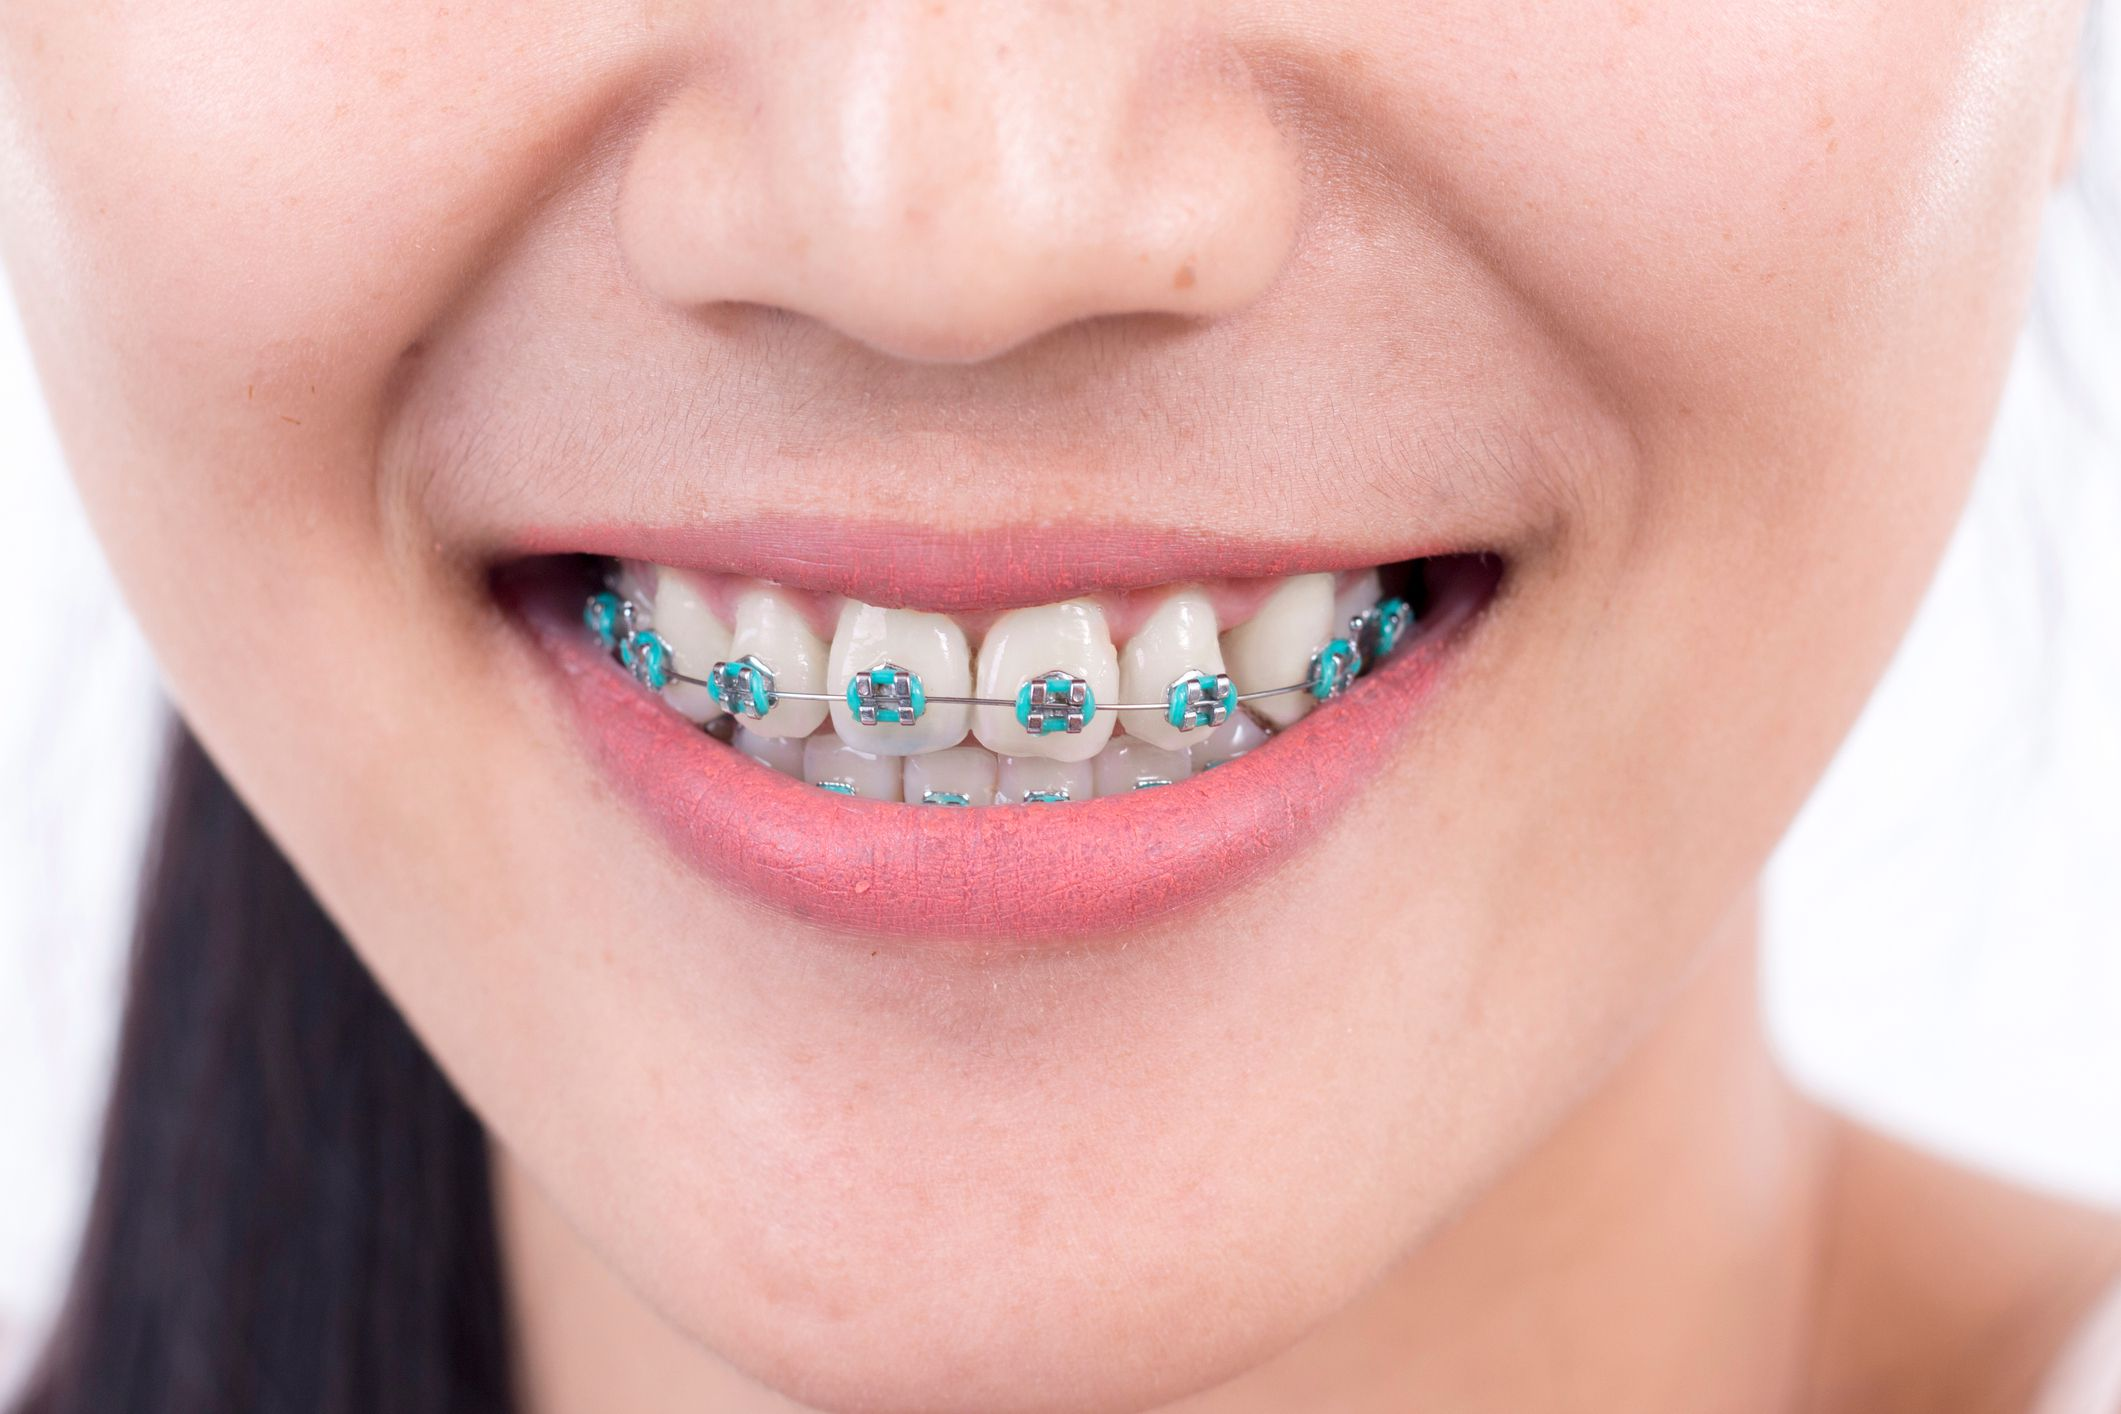 The Purposes of Rubber Bands on Braces